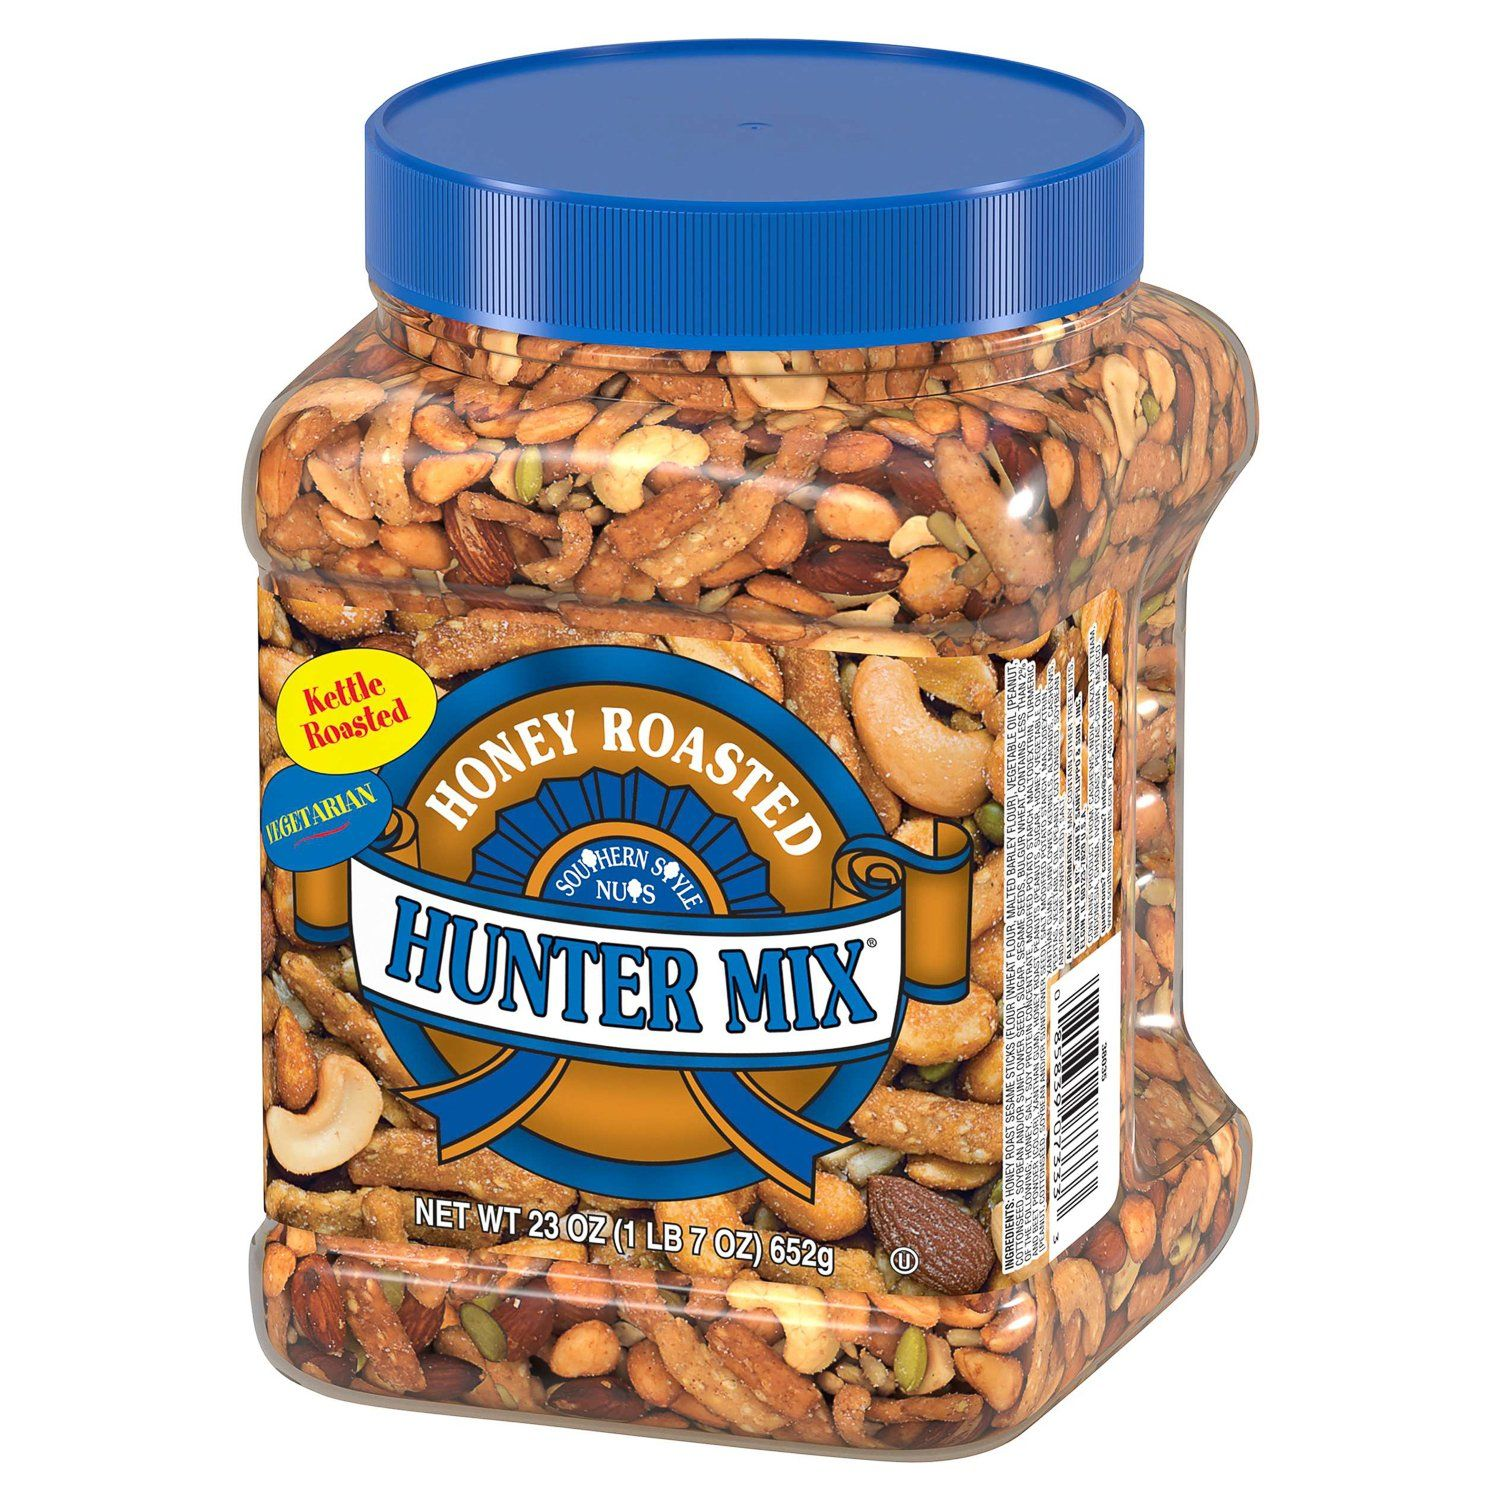 Southern Style Nuts Hunter Mix Southern Style Nuts Honey Roasted 23 Ounce